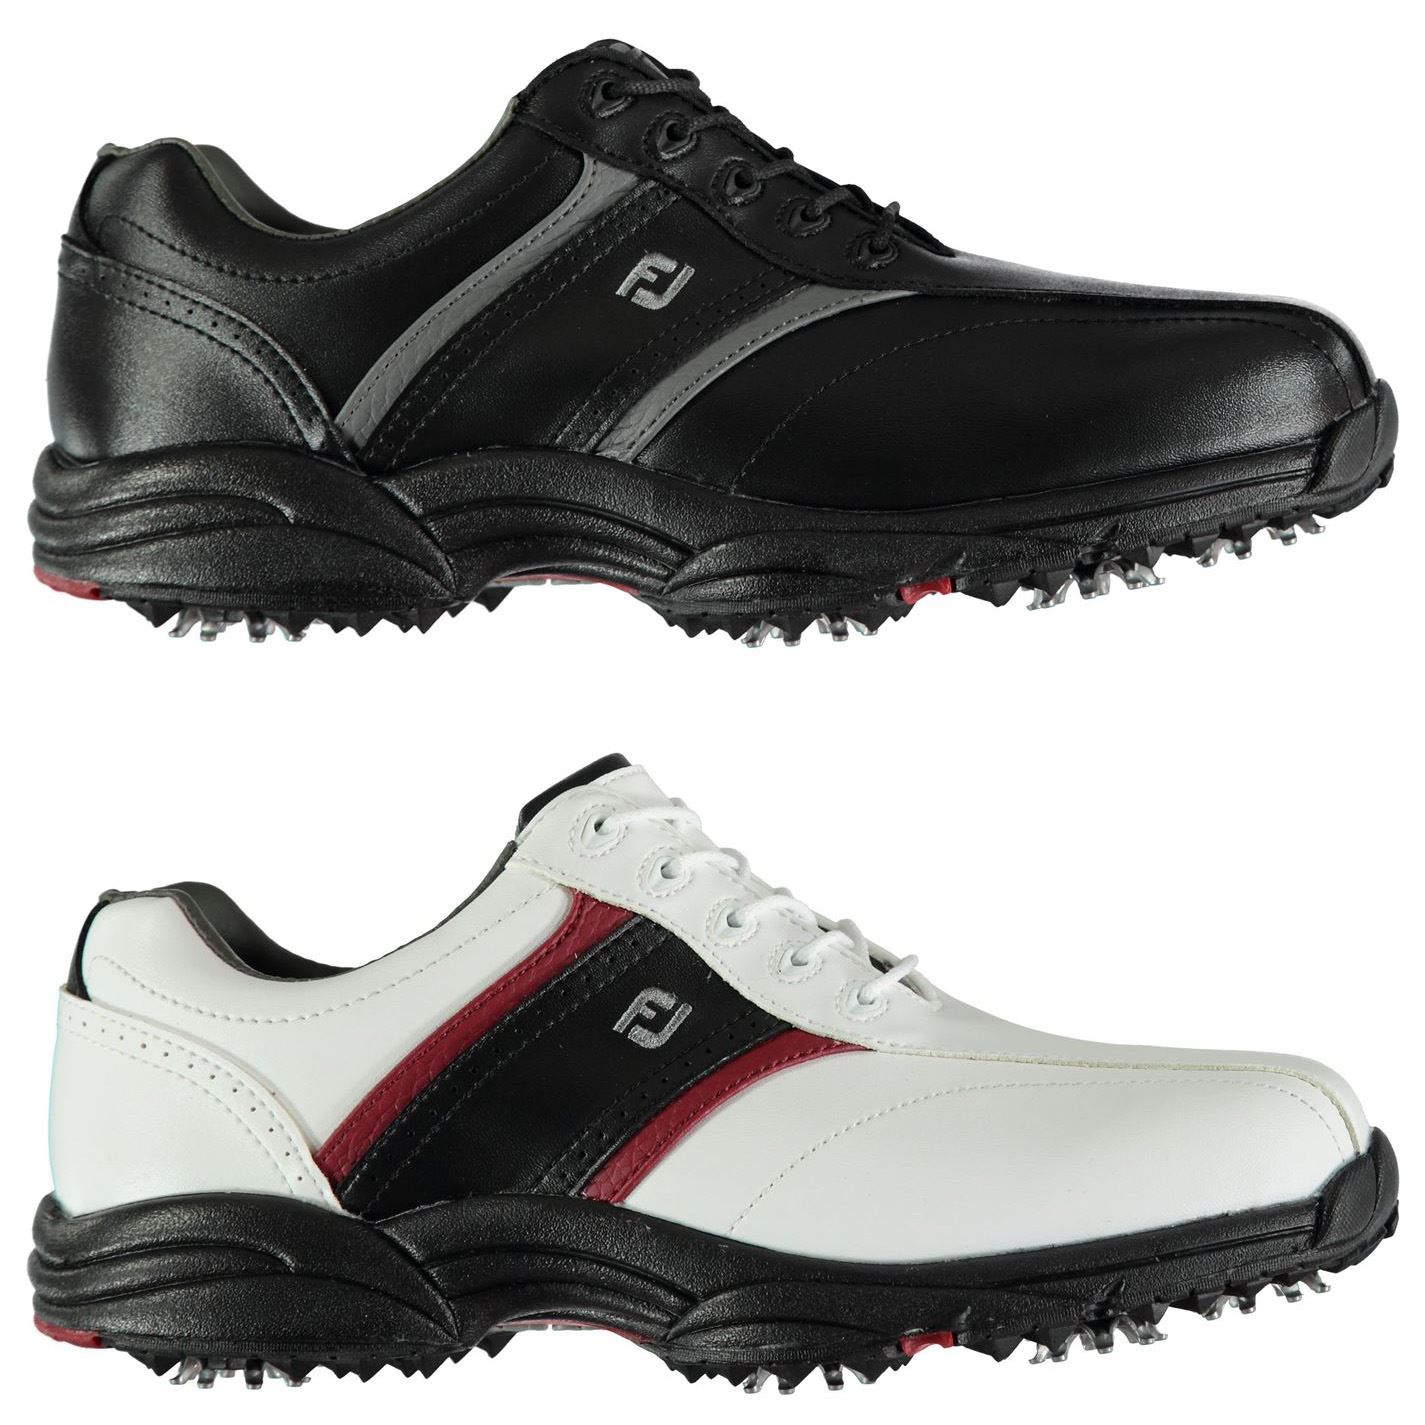 ee9d24094d98a Details about Footjoy Softjoy Golf Shoes Mens Spikes Footwear